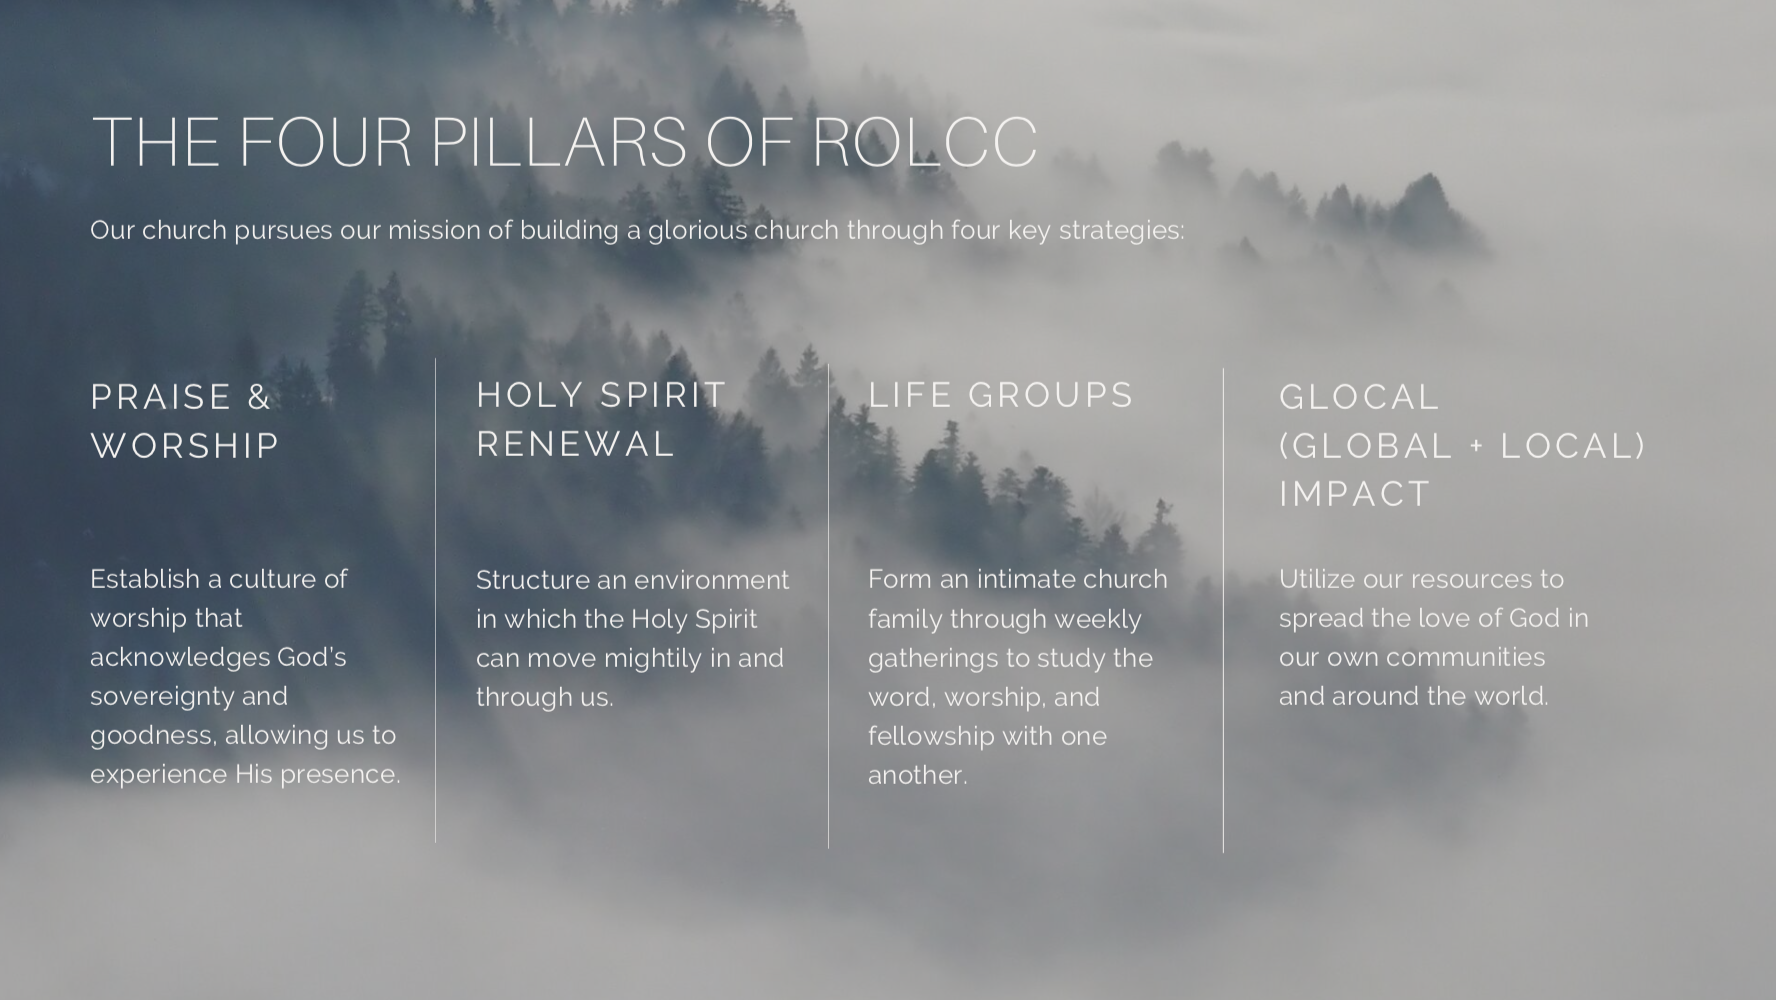 four pillars of rolcc